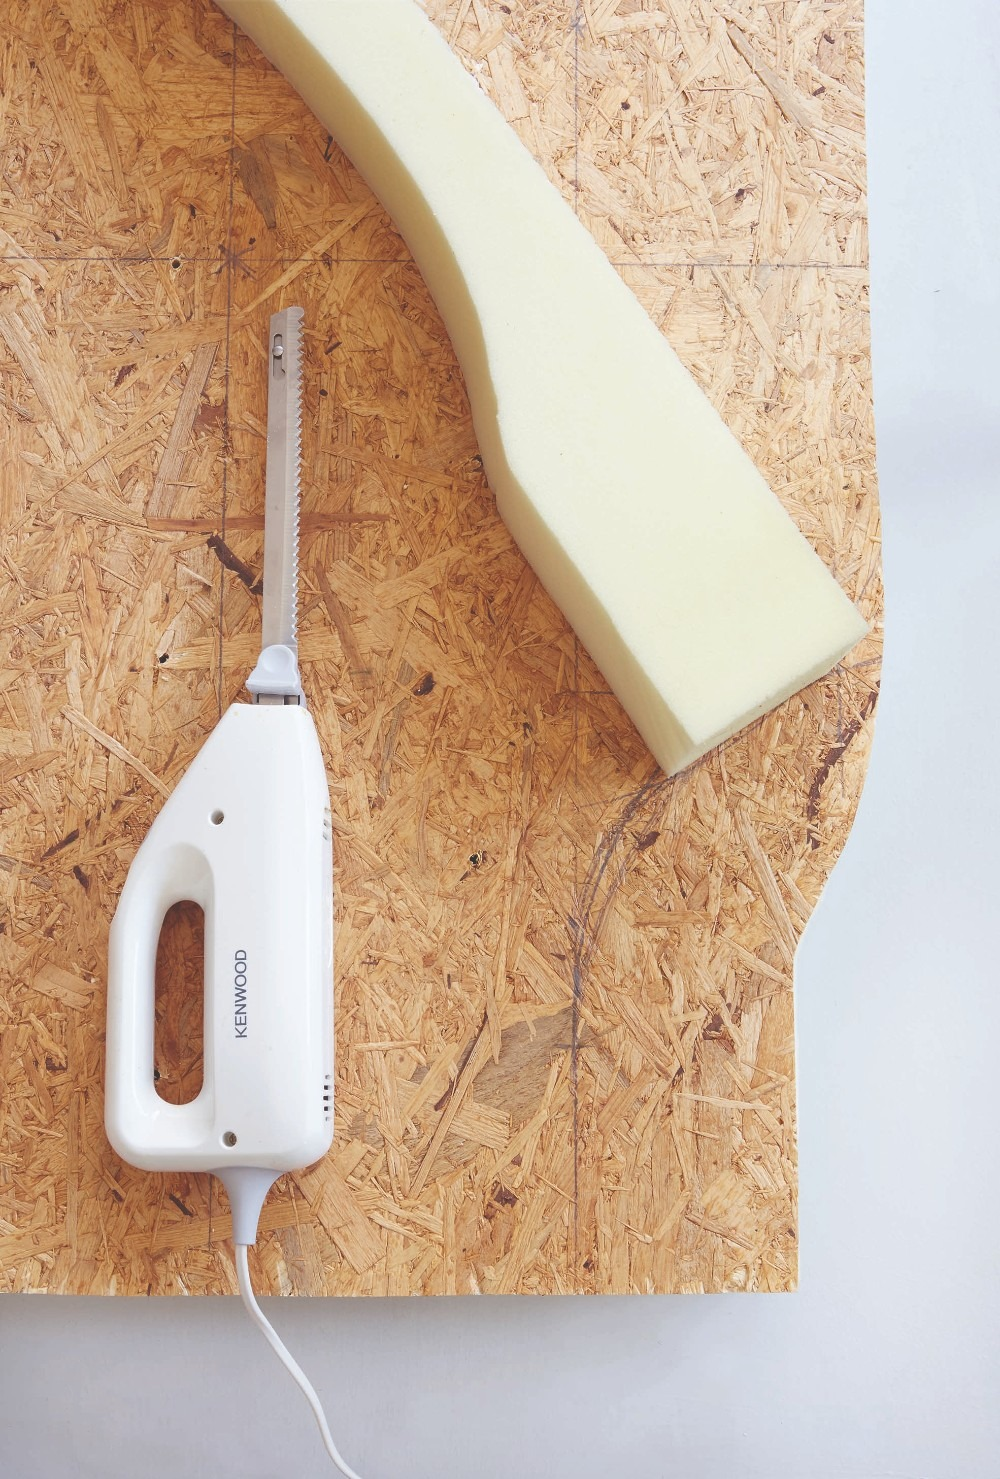 chipboard foam saw